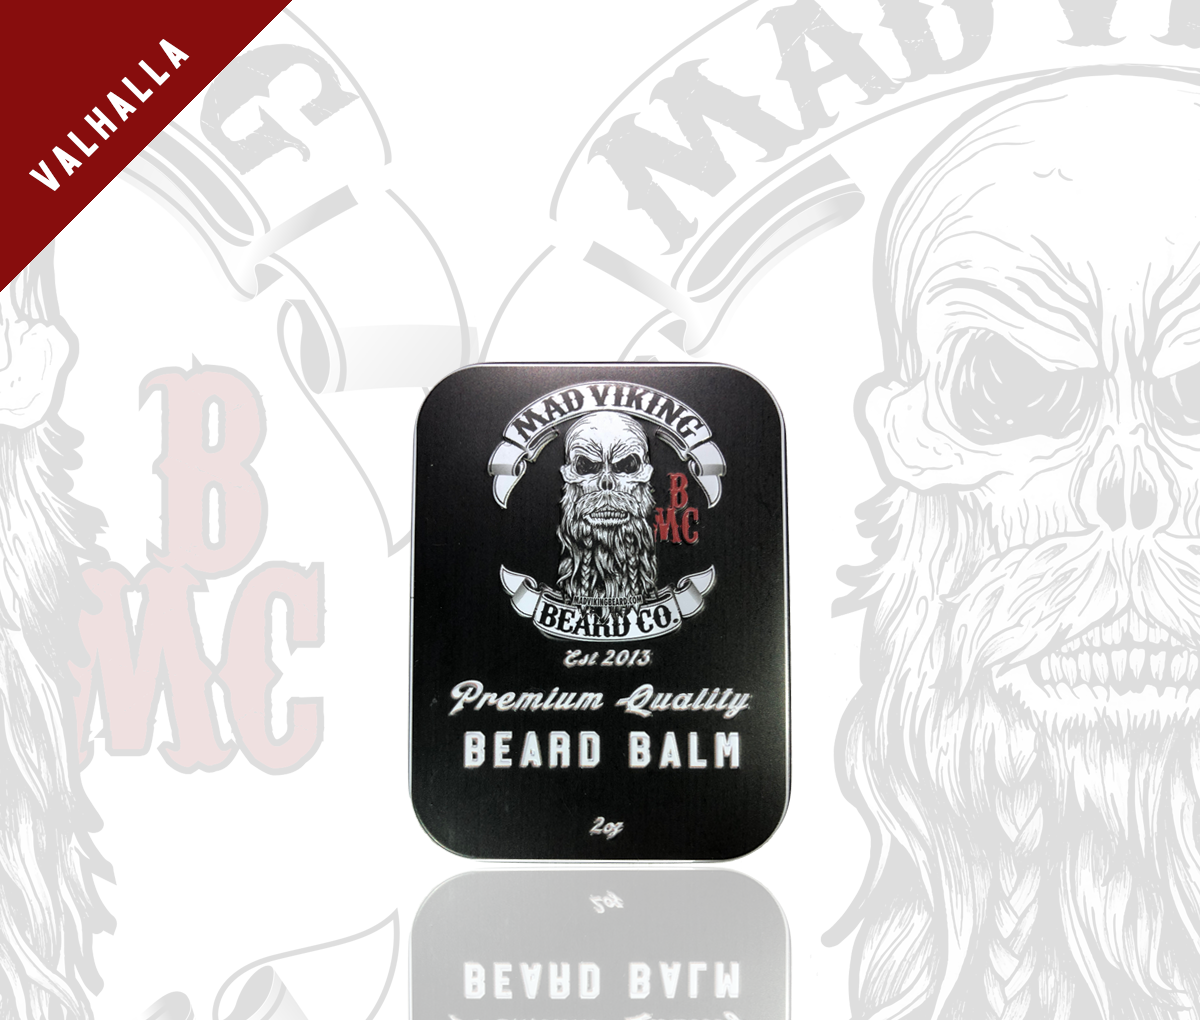 Mad Viking Beard Company Balm Ingredients